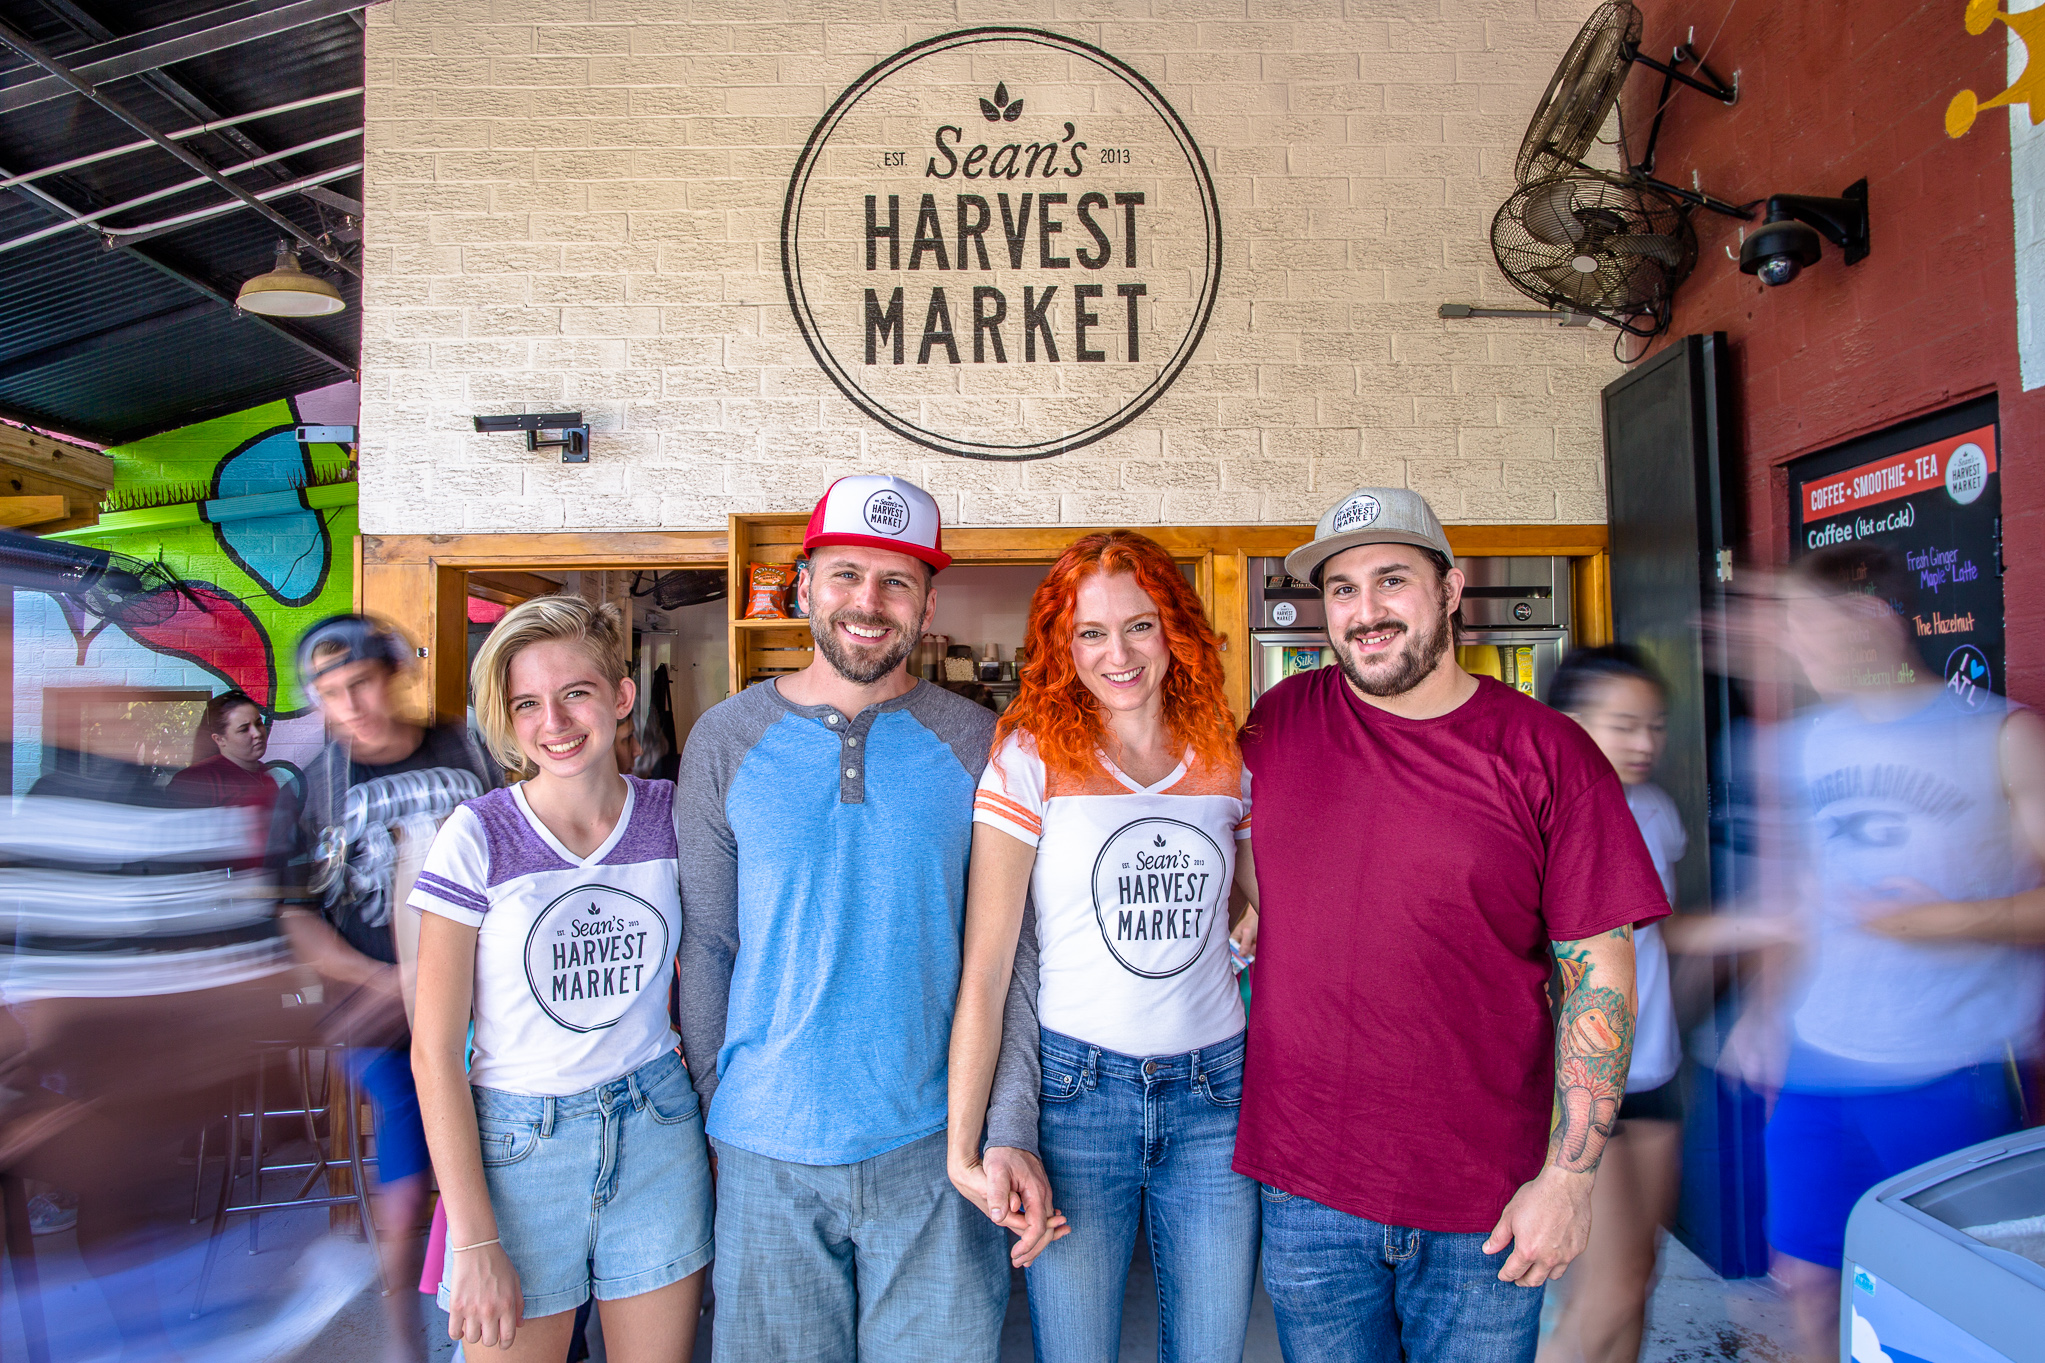 Seans-Harvest-Market-Atlanta-Erik-Meadows-Photography-31.jpg